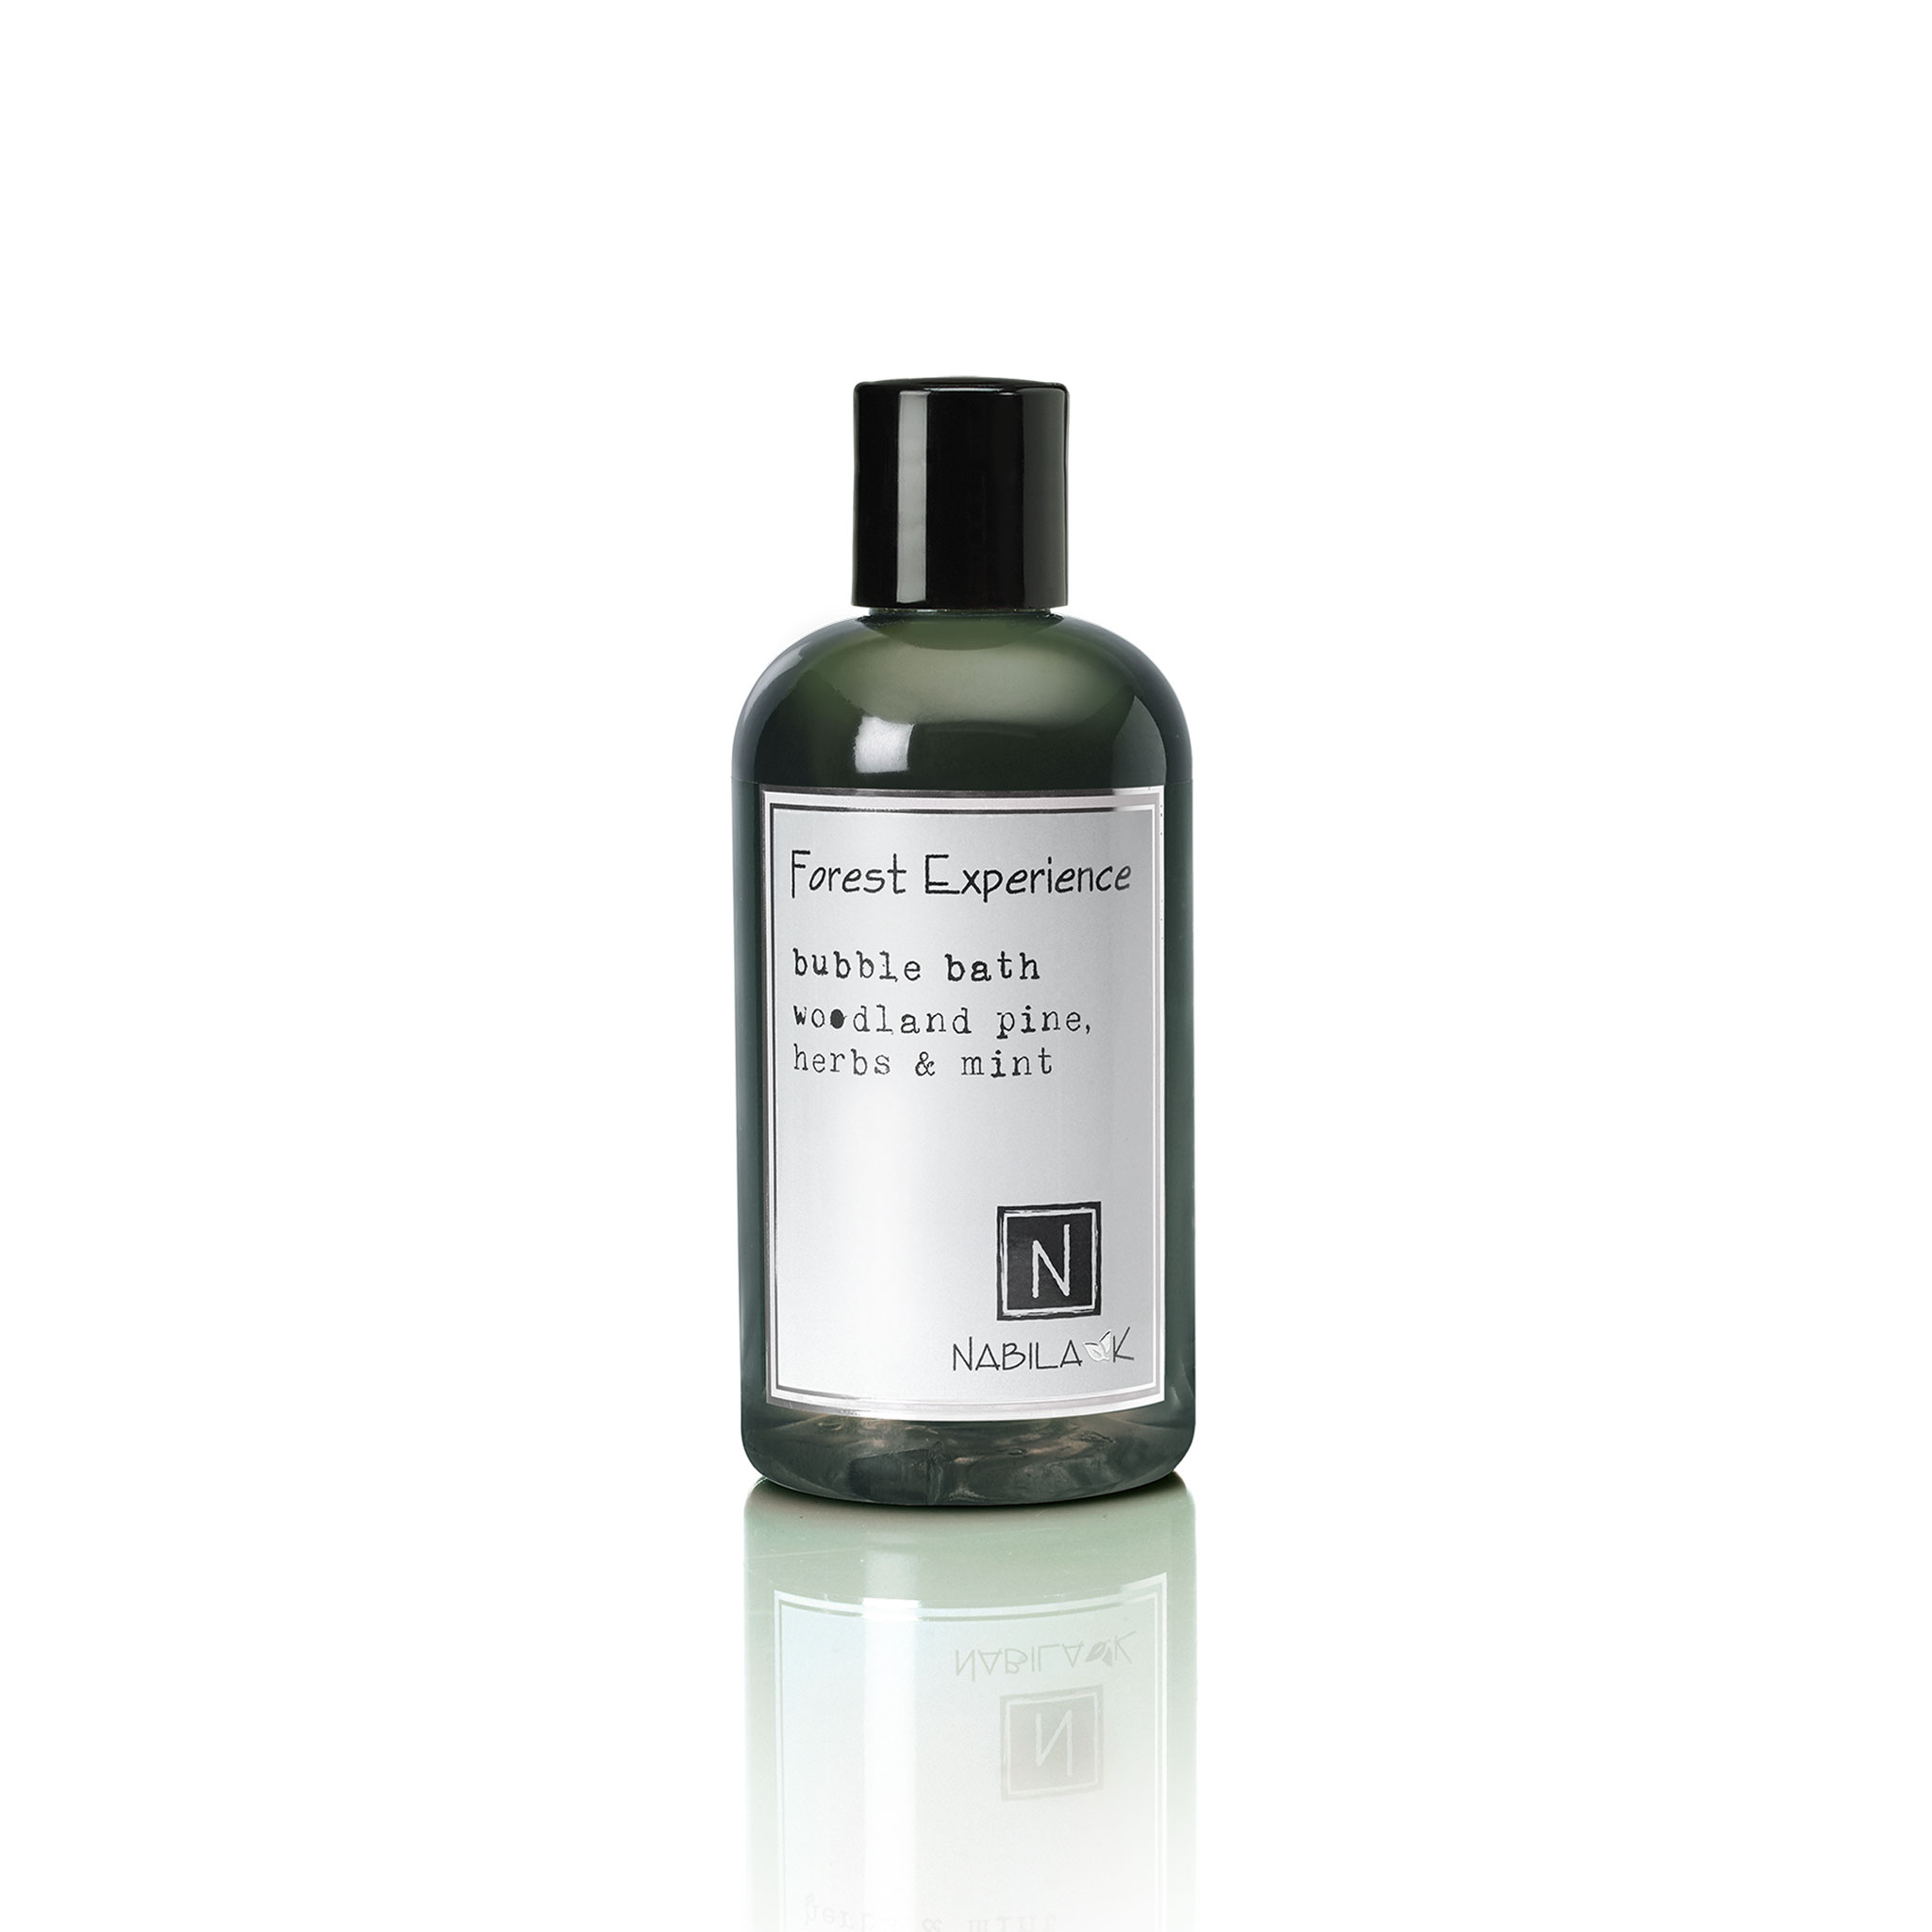 1 8oz bottle of forest experience bubble bath woodland pine, herbs and mint